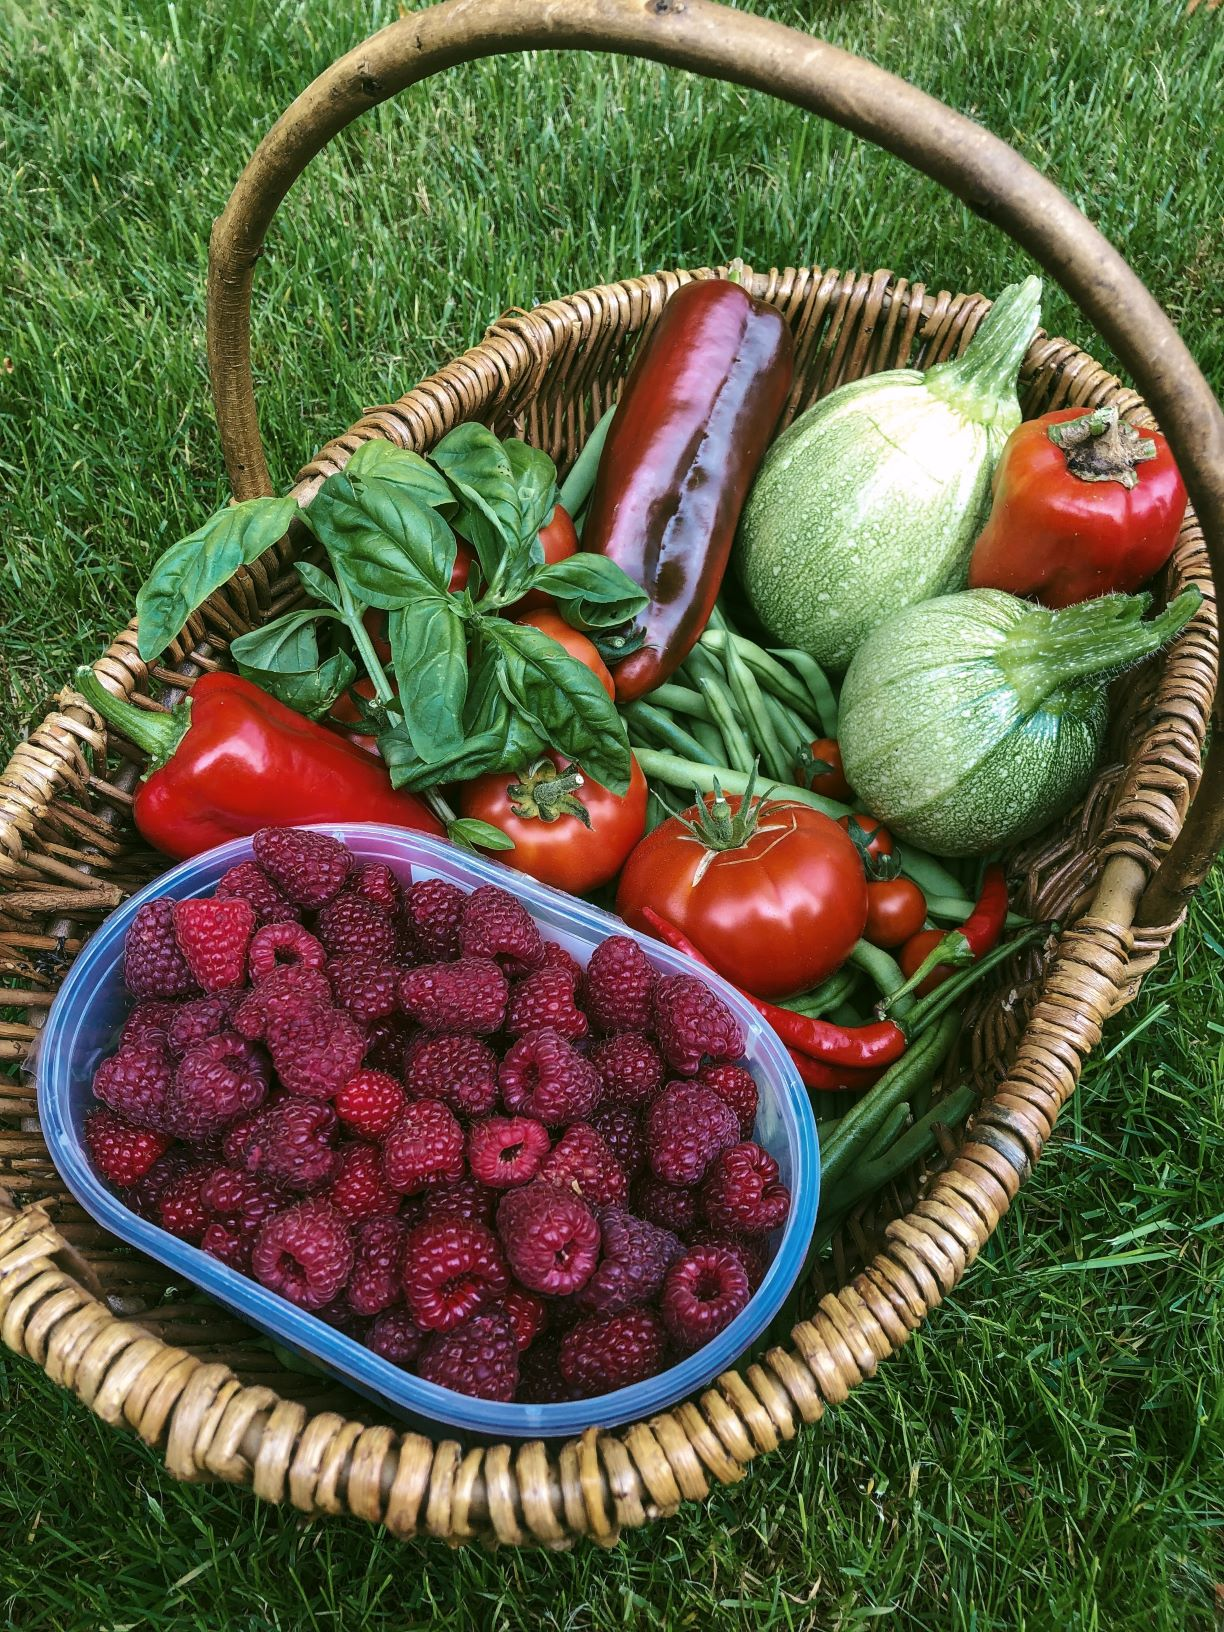 Allotment anniversary: our allotment journey and advice for beginners